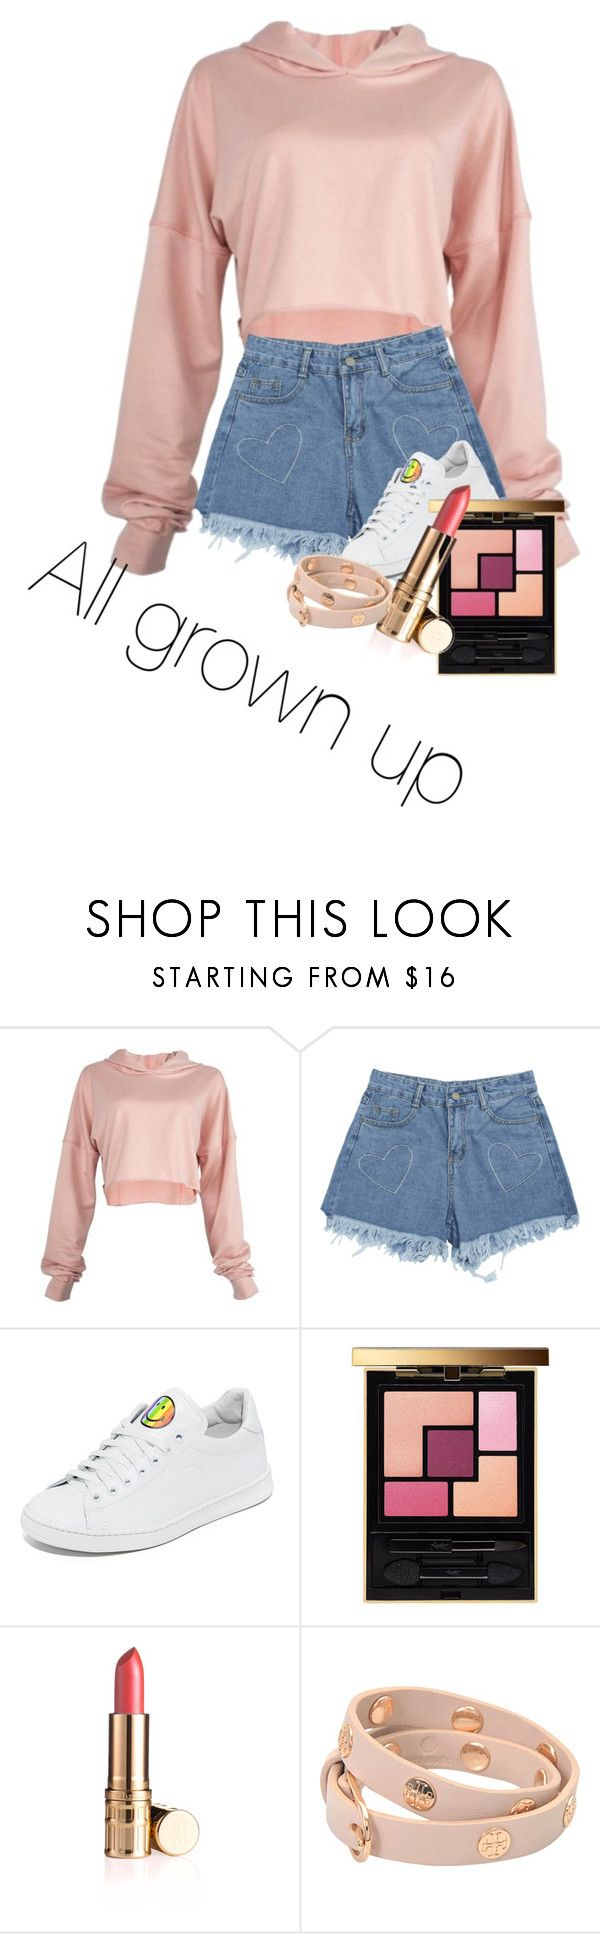 """""""15 Year Old Me 😁"""" by mack12101 on Polyvore featuring beauty, Joshua's, Yves Saint Laurent and Tory Burch"""